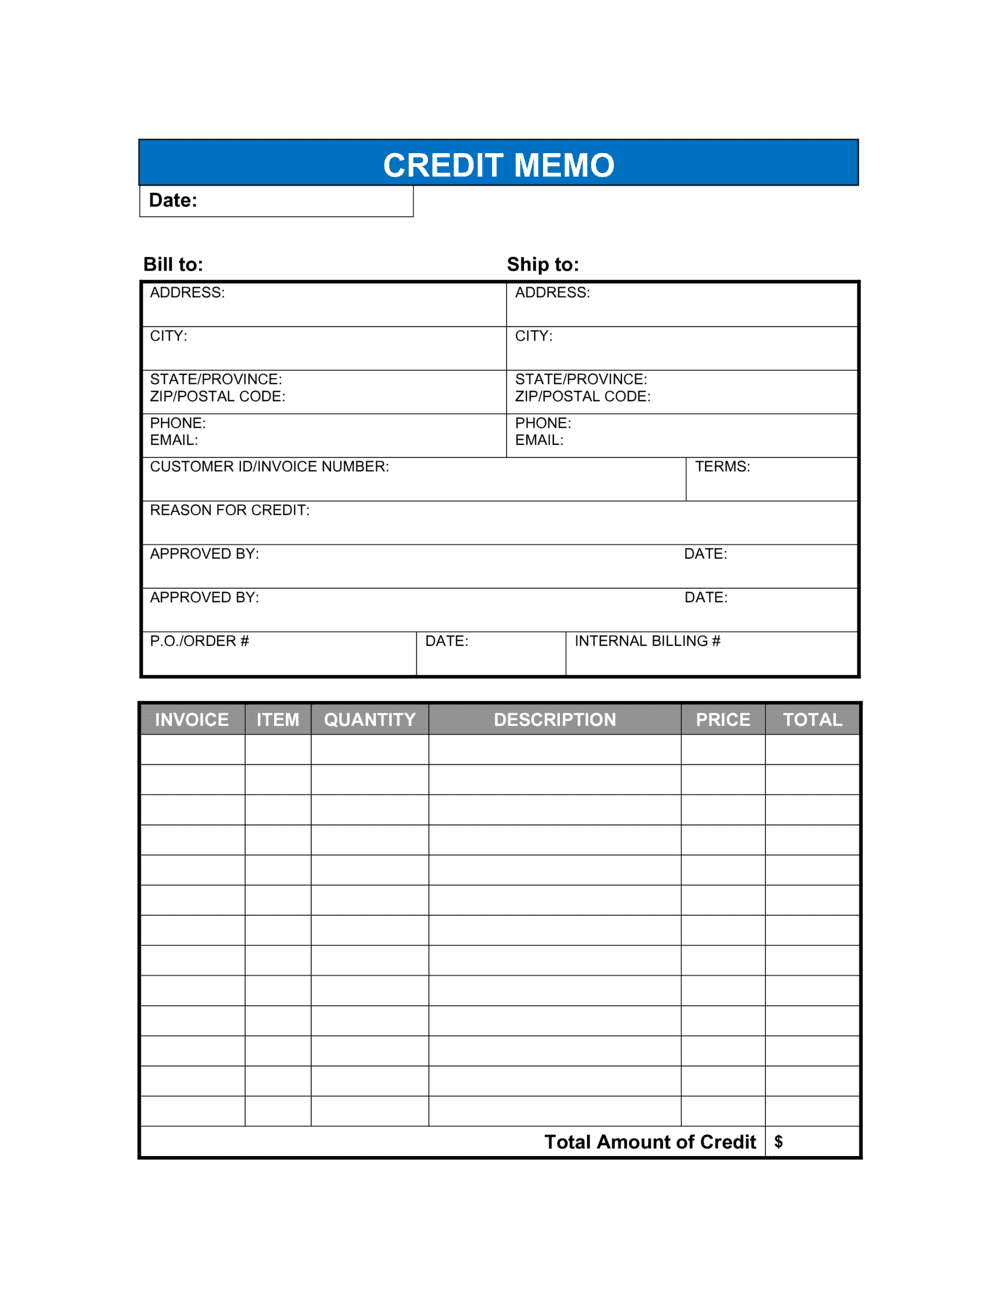 Business-in-a-Box's Credit Memo Template